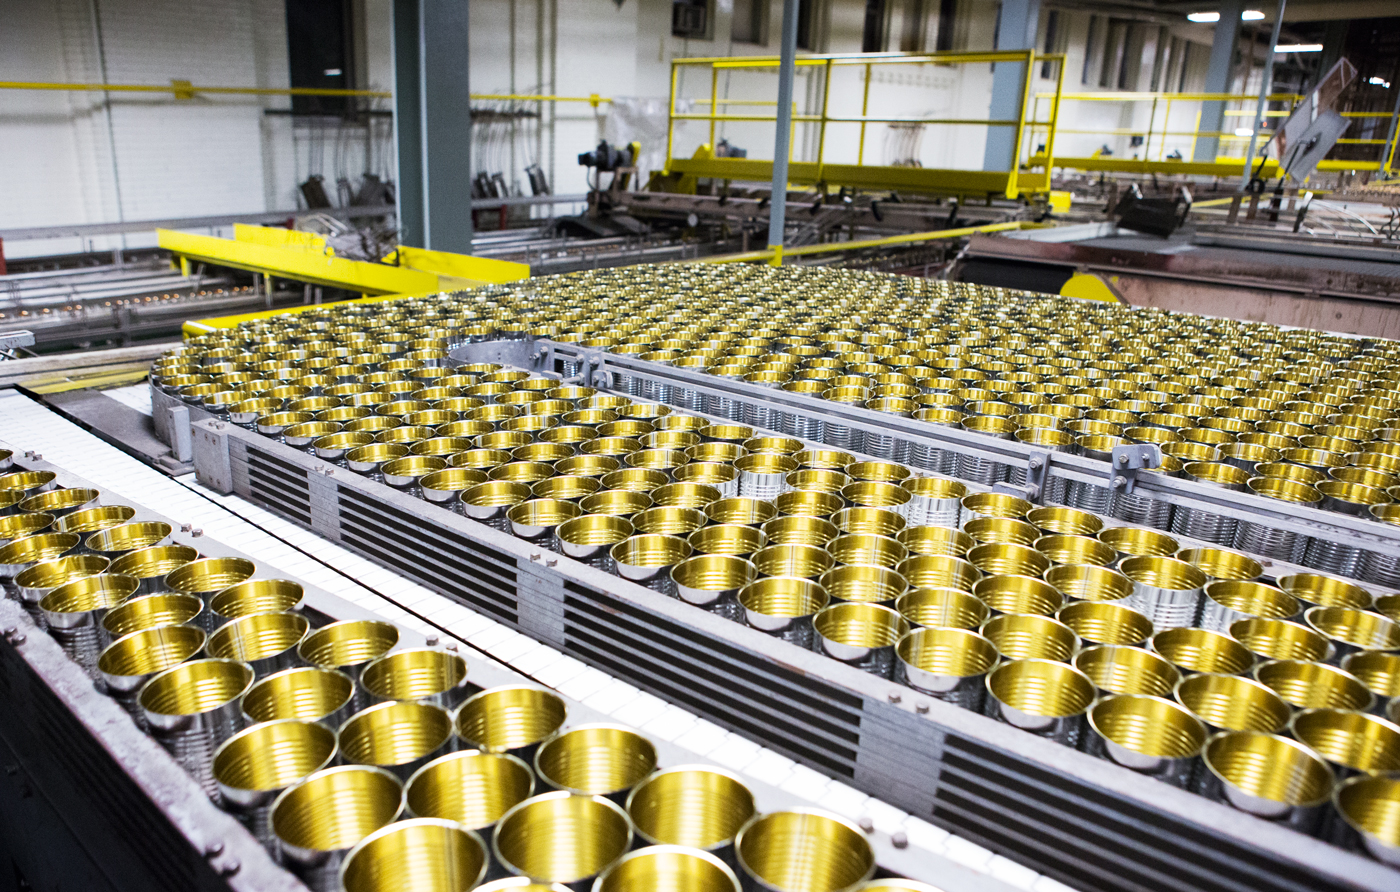 Tomato processing at the Highbury Canco factory in Leamington, Ontario for Canadian Packaging.